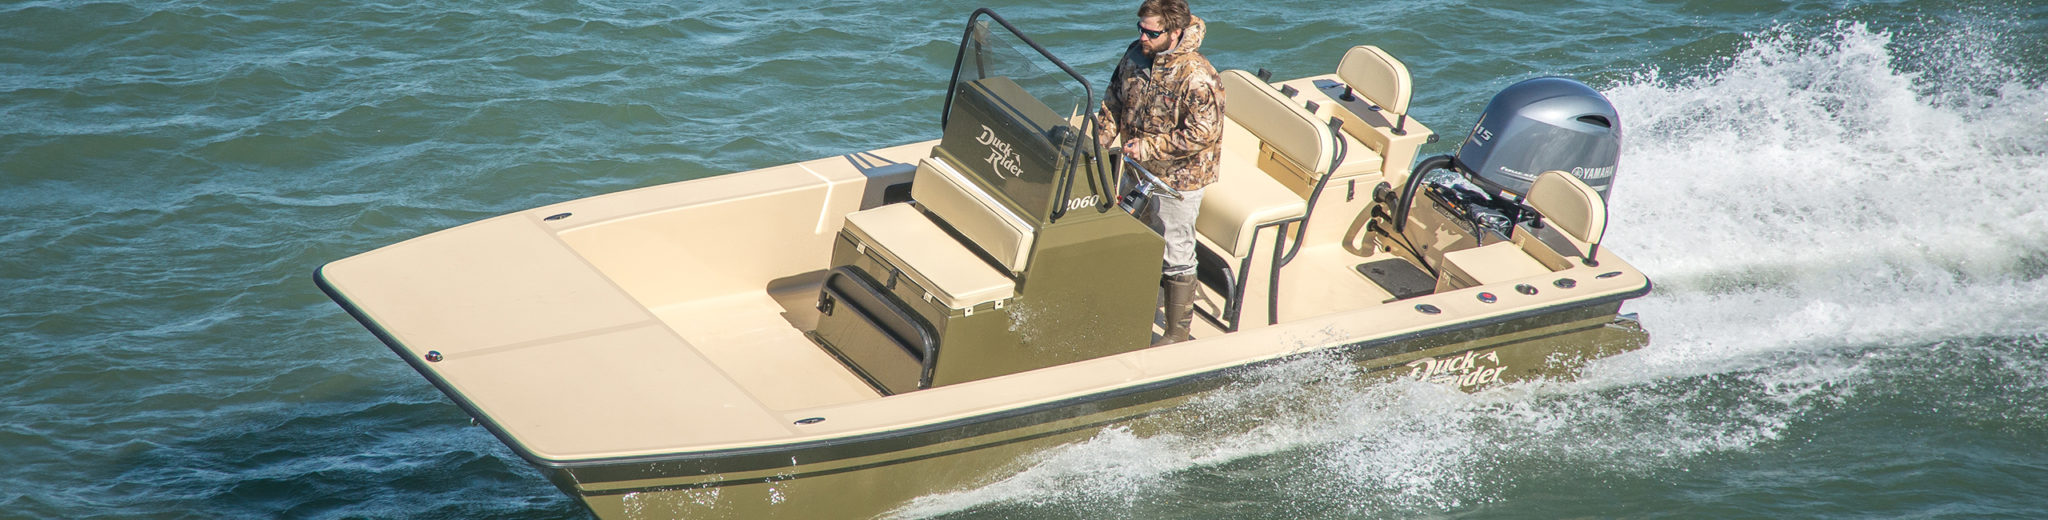 KenCraft Boats for Sale Fort Myers